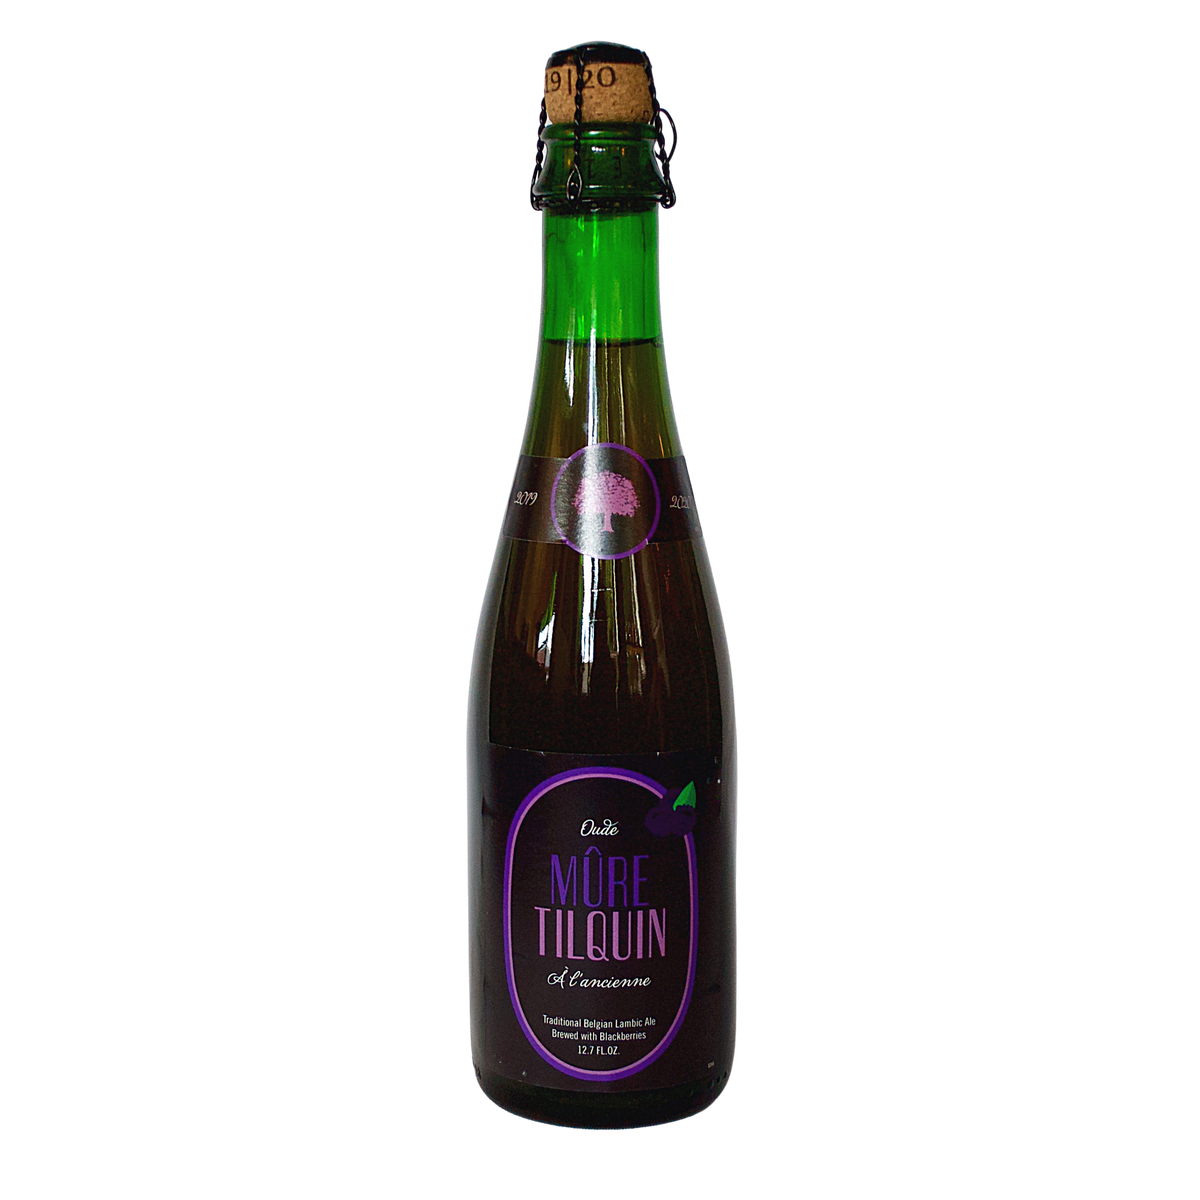 Gueuzerie Tilquin Oude Mure 2020 12.7oz Bottle <br> Blackberry Lambic <br> (Limit 2 Per Order)